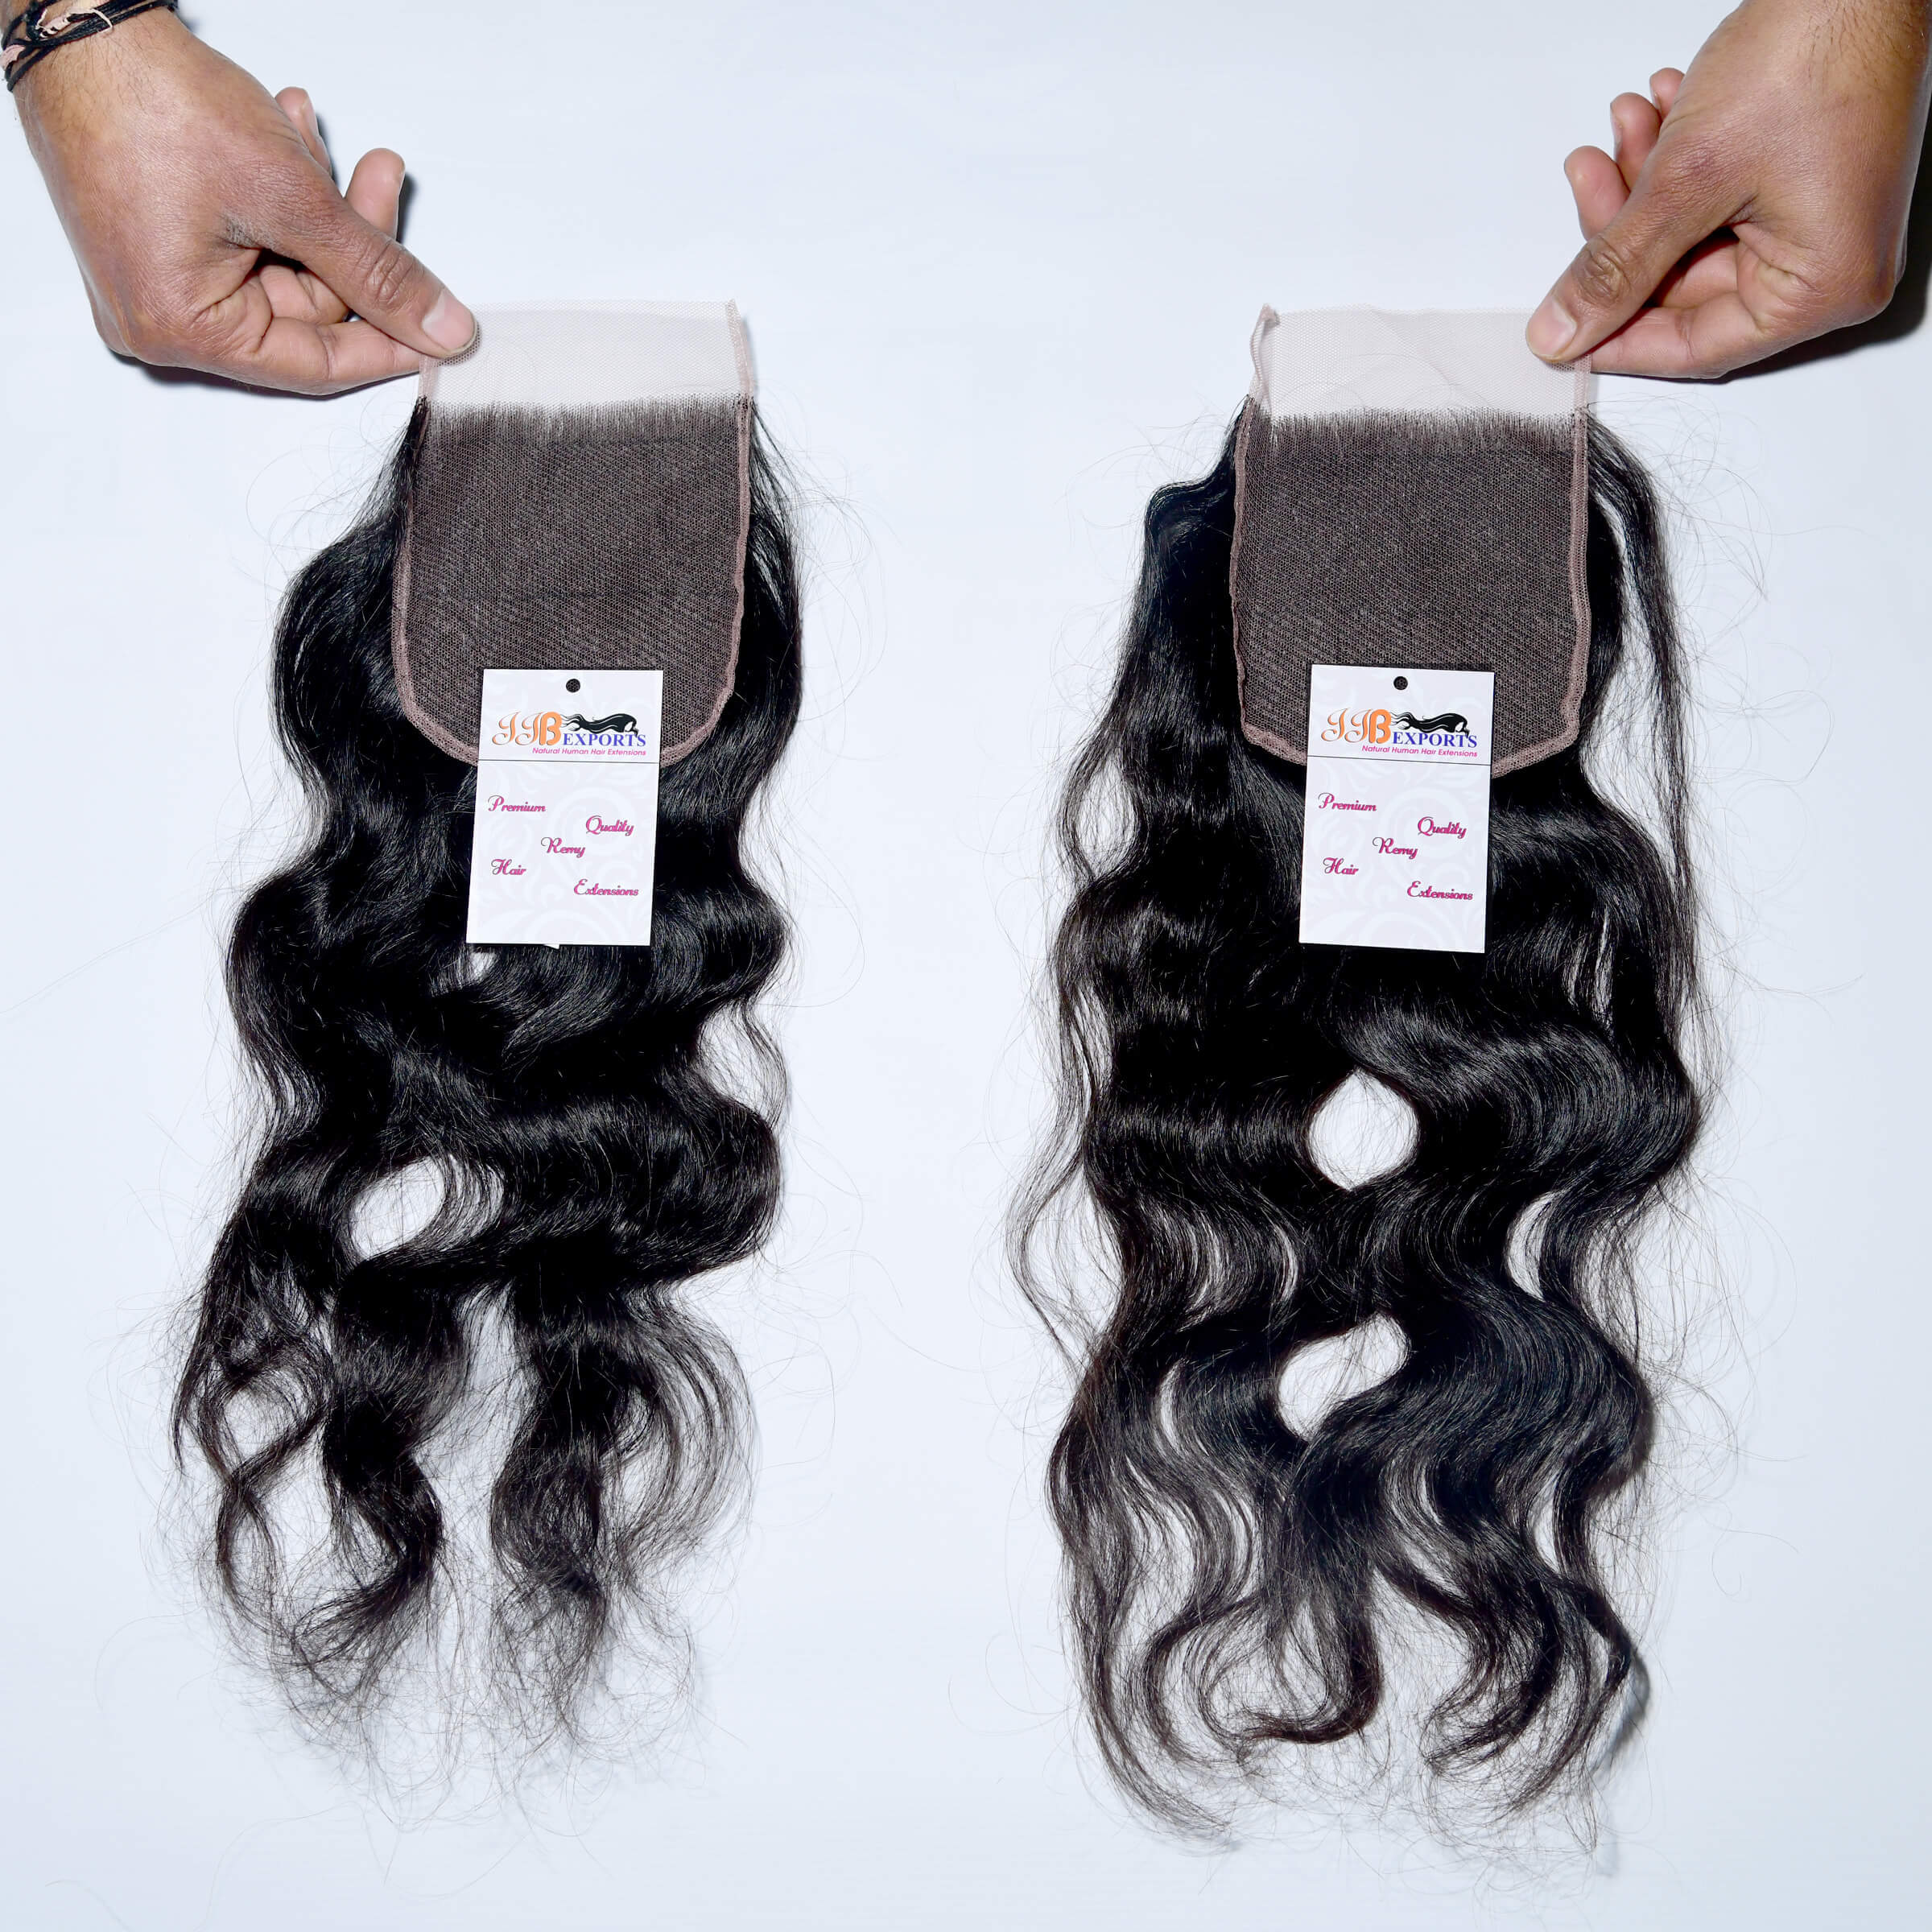 Wholesale Natural Color Virgin Cuticle AligneWholesale Natural Color Virgin Cuticle Aligned Human Hair Bundles With Swiss Hd Lace Closured Human Hair Bundles with Swiss Hd Lace Closure